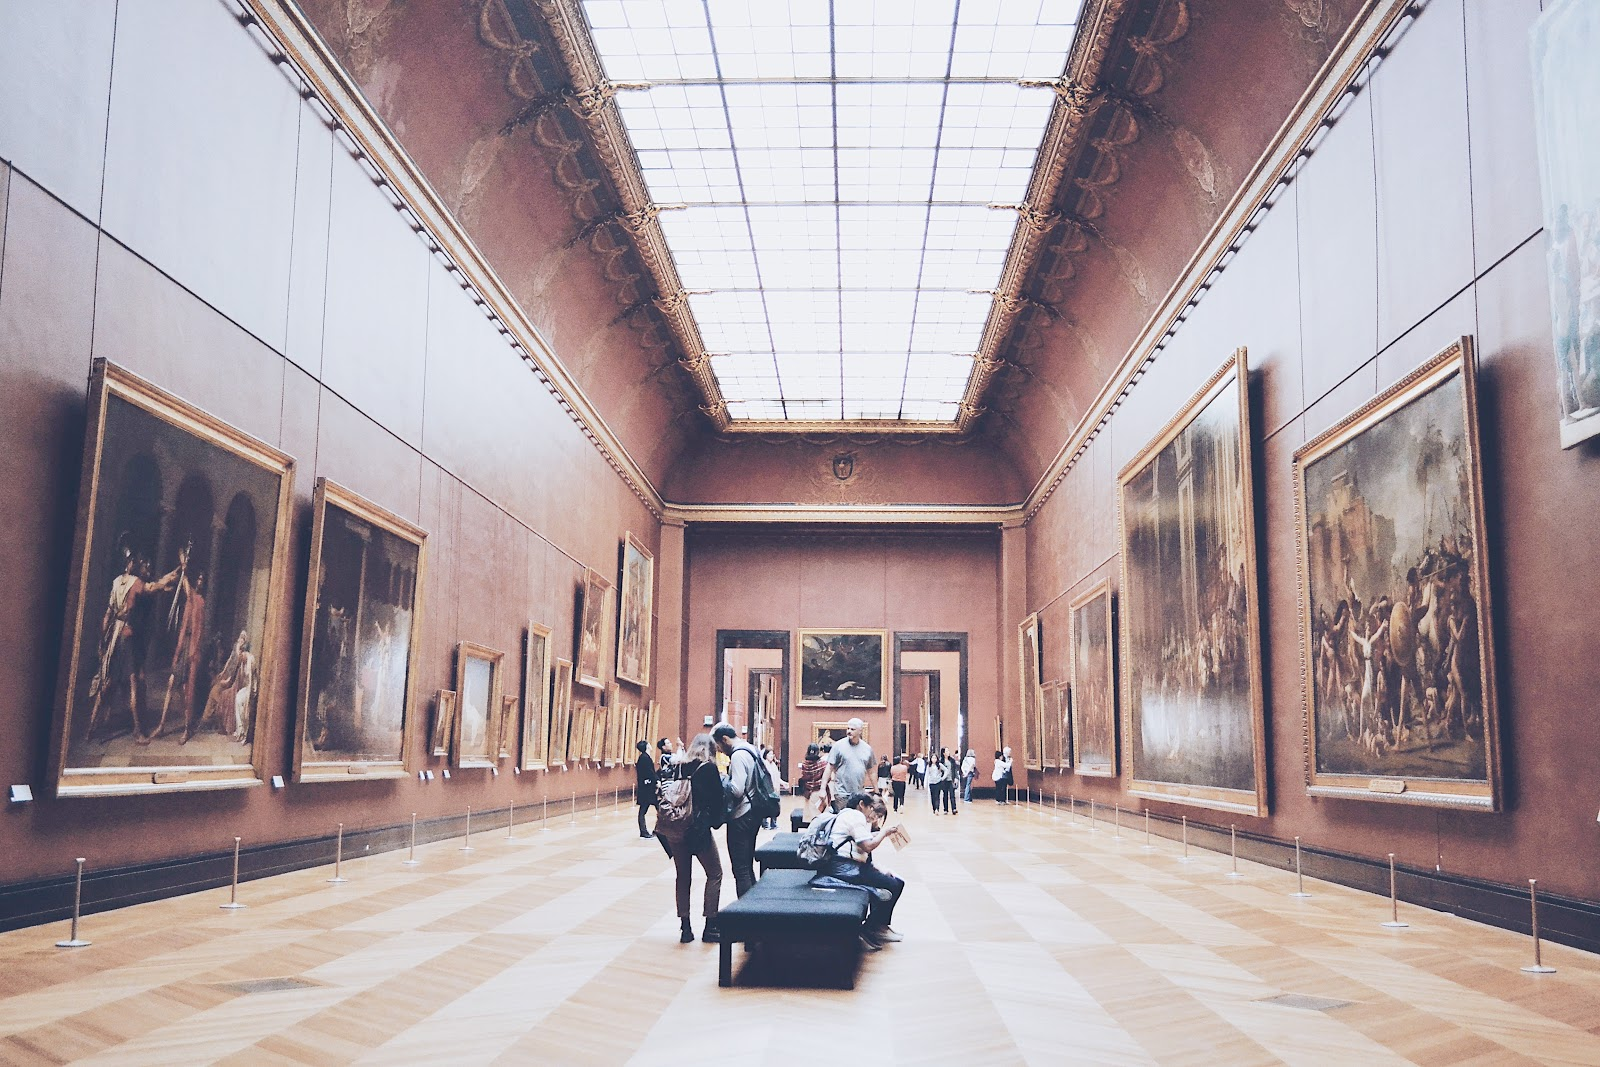 people stand and sit gathered on benches within a long museum hallway with tall walls lined with large artwork